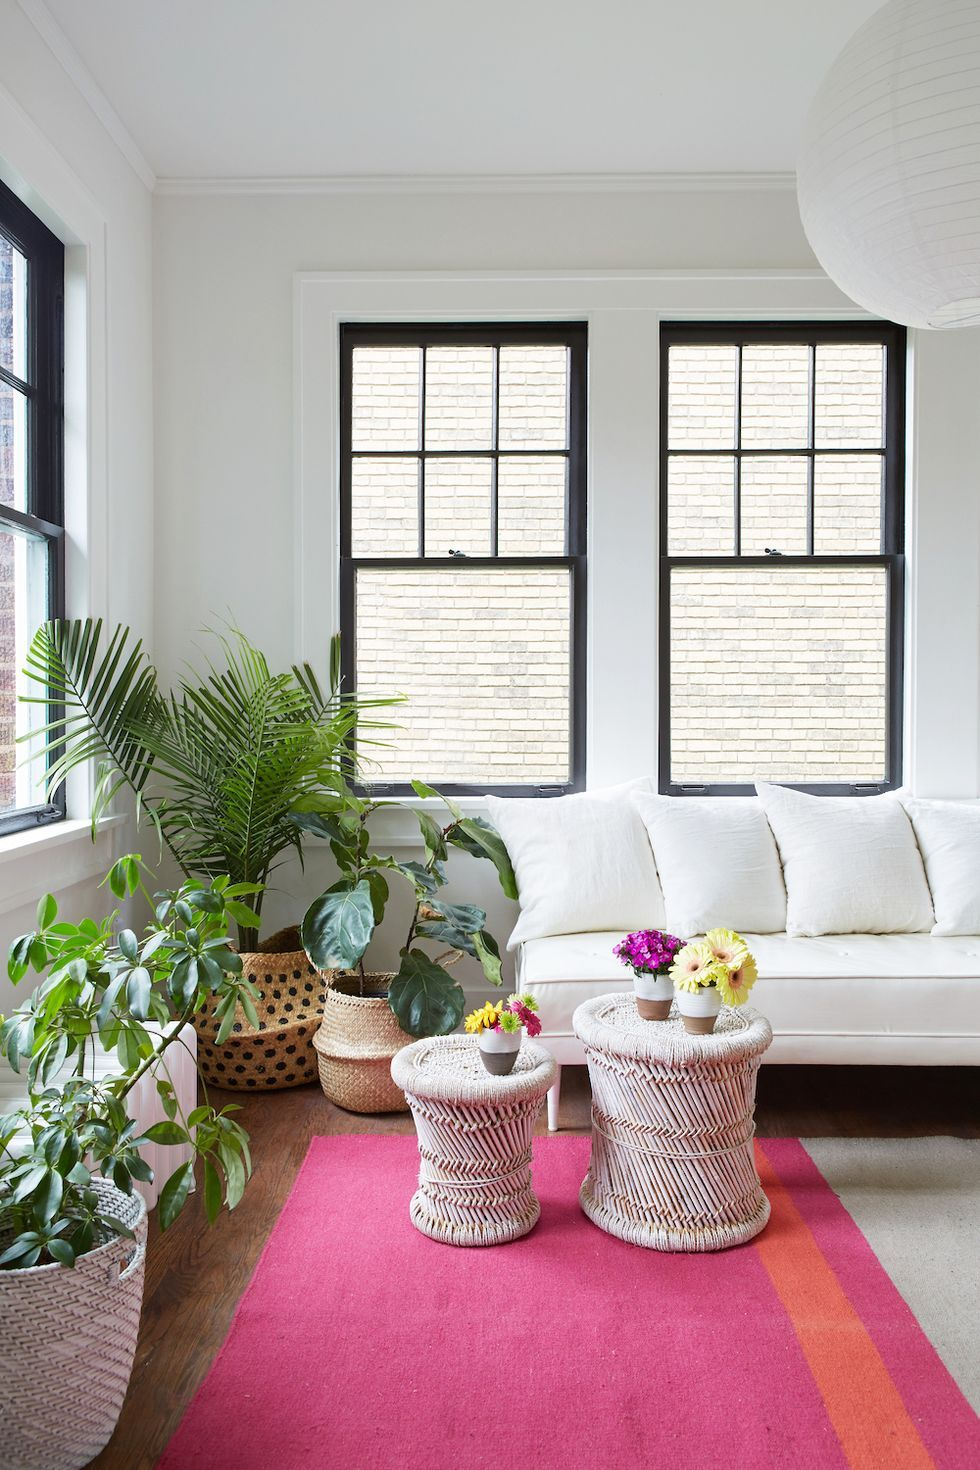 Home Design Ideas and Tips: Step by step instructions to Make Your First Apartment Look Elevated and Cozy